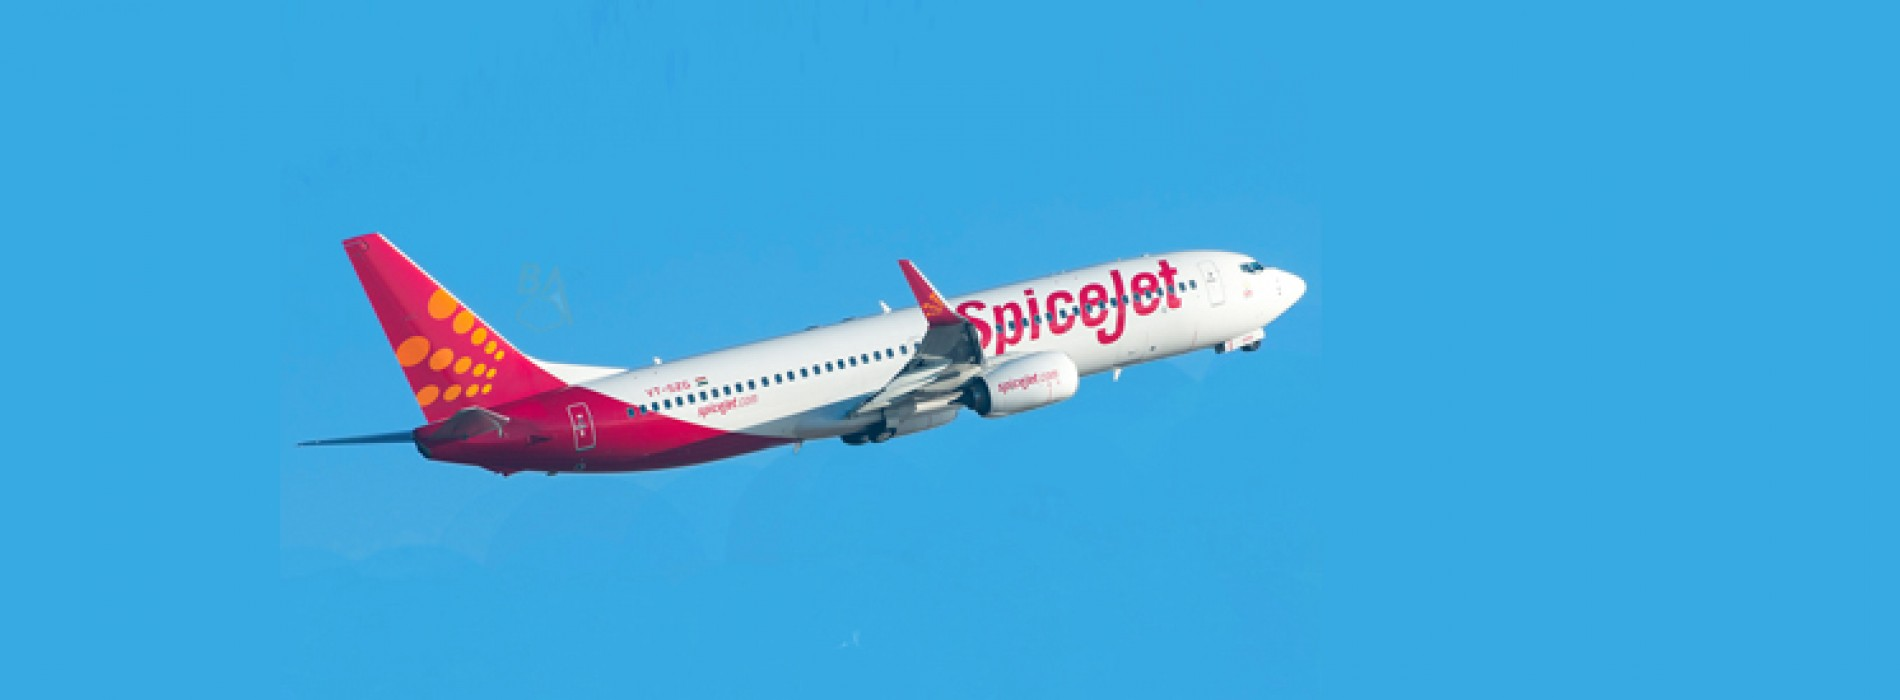 Galloping IndiGo Stock Outpaces Combined m-cap of Jet, SpiceJet